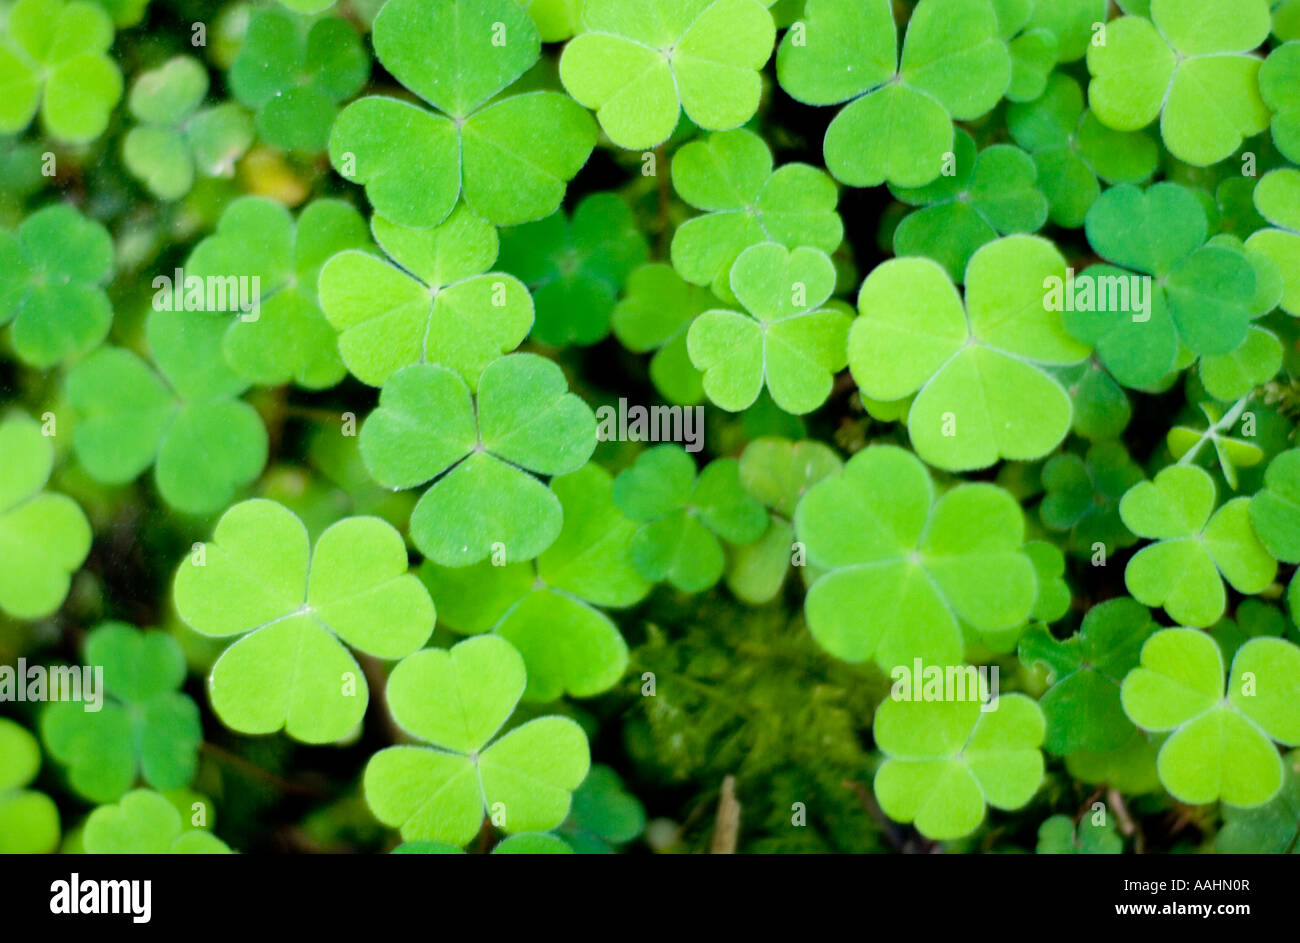 Shamrock Plant Three Leaves Stock Photos Shamrock Plant Three